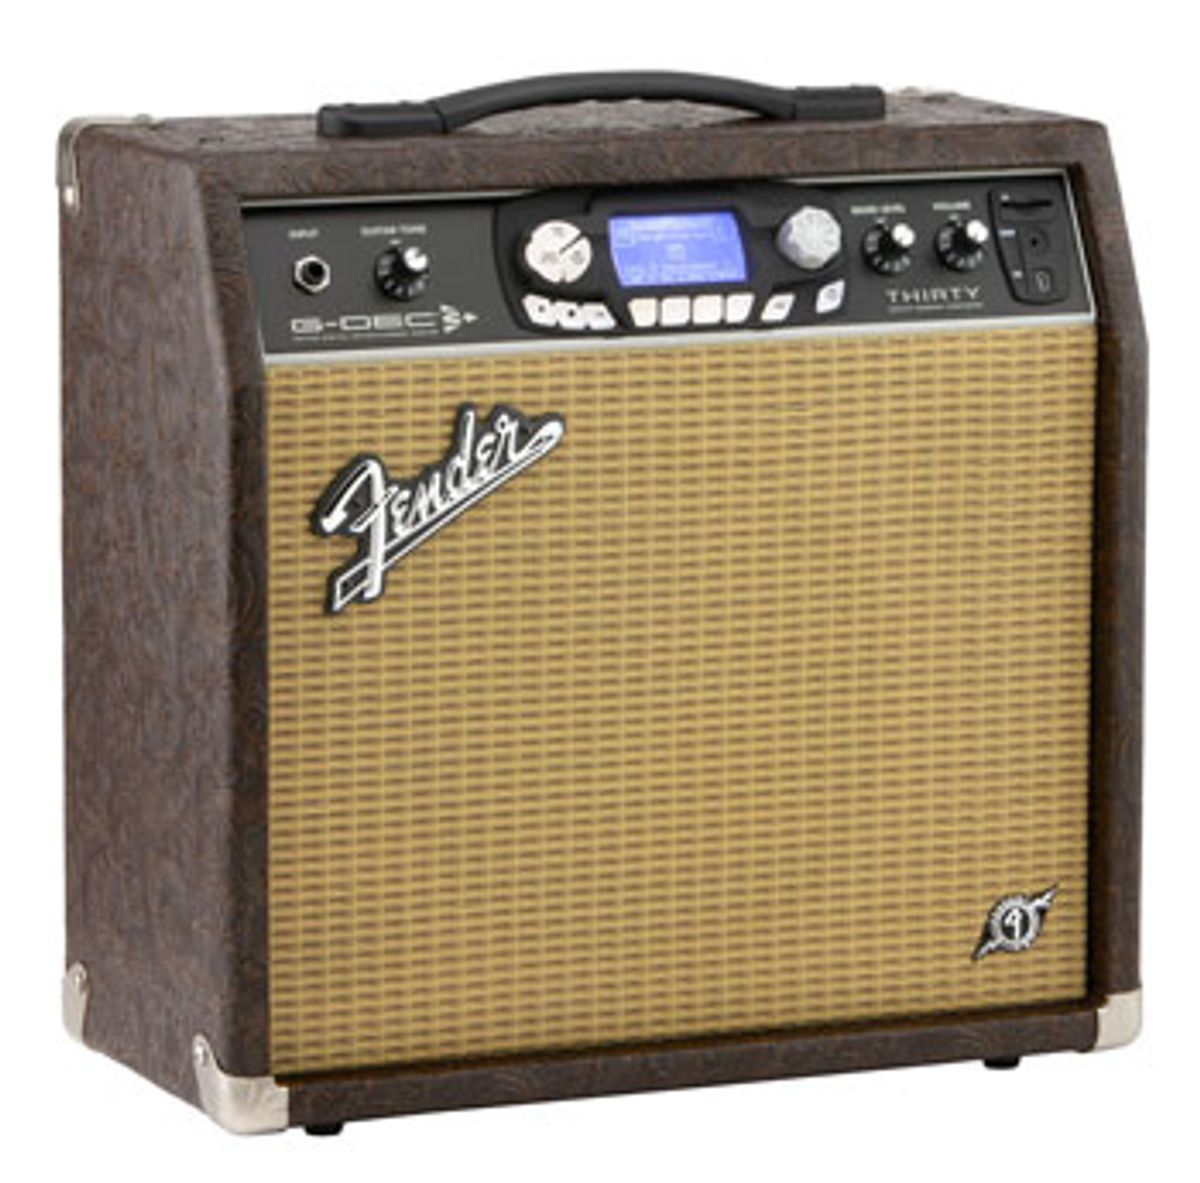 Fender Introduces Special Edition G-DEC 3 Thirty Blues, Metal, and Country Amps